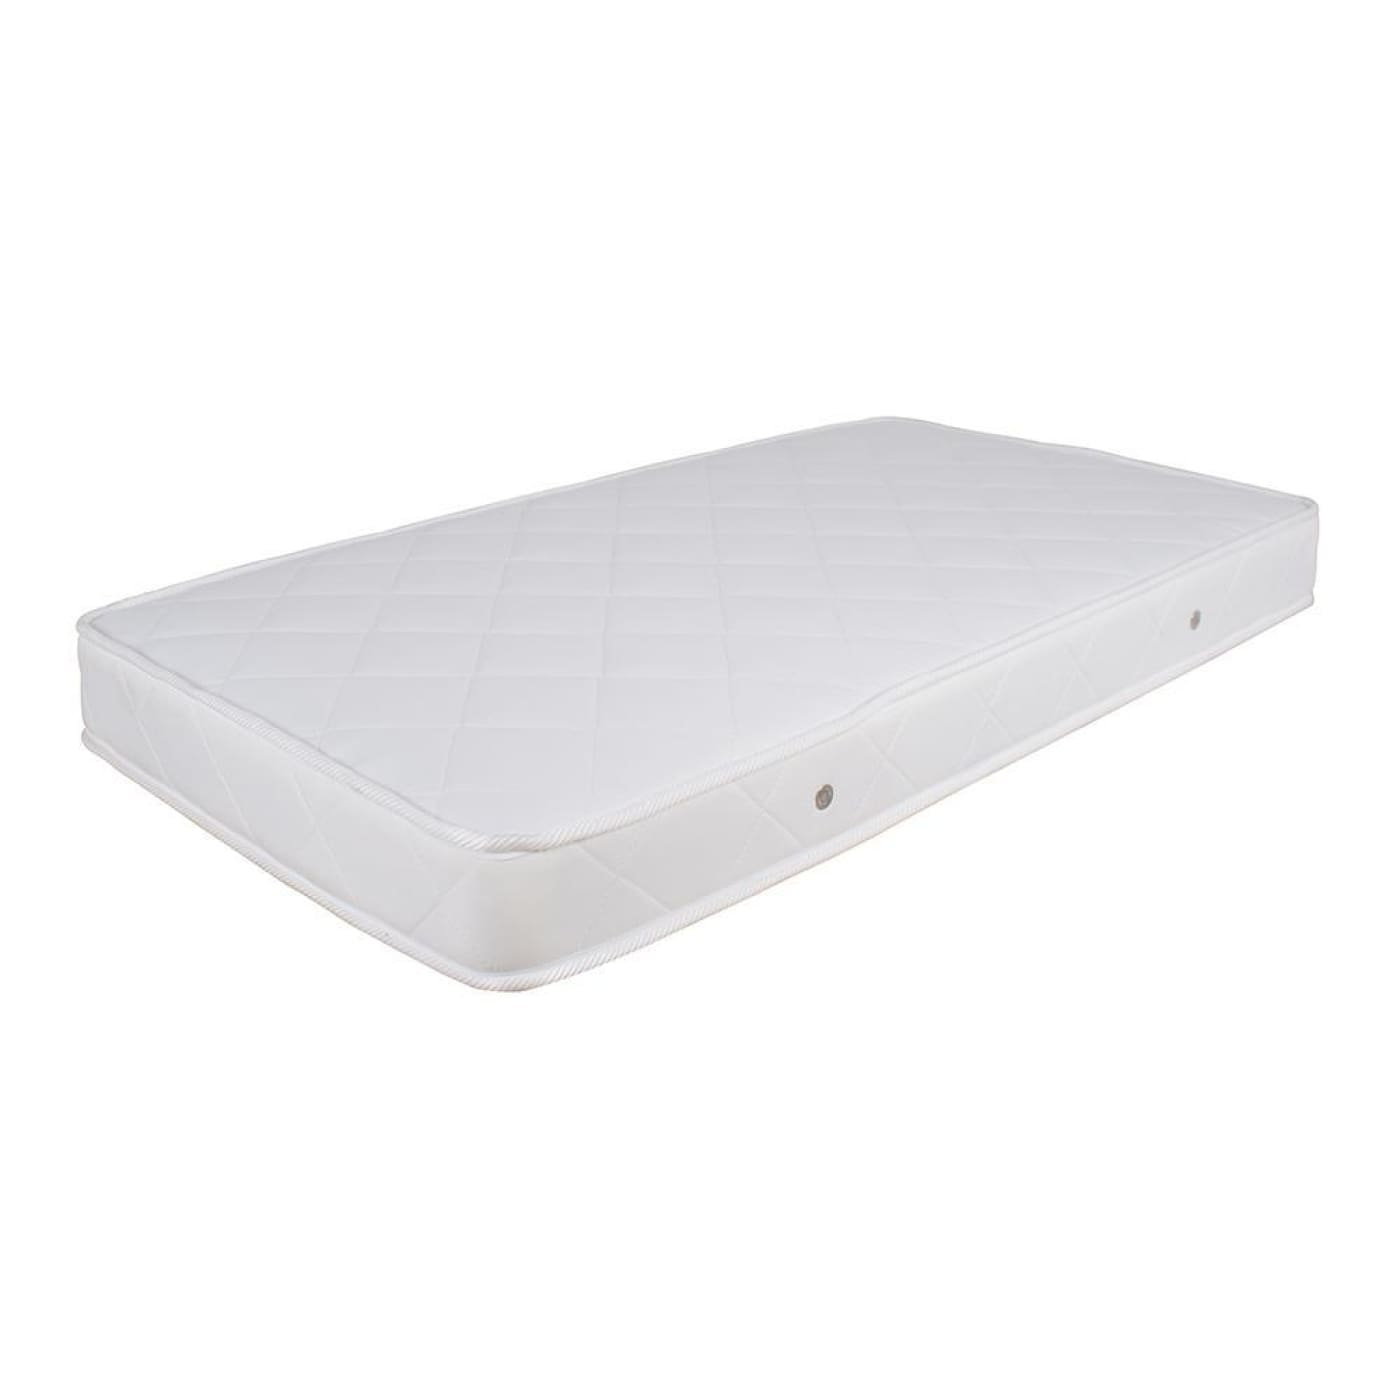 Childcare Innerspring Mattess - White - White - NURSERY & BEDTIME - COT MATTRESSES